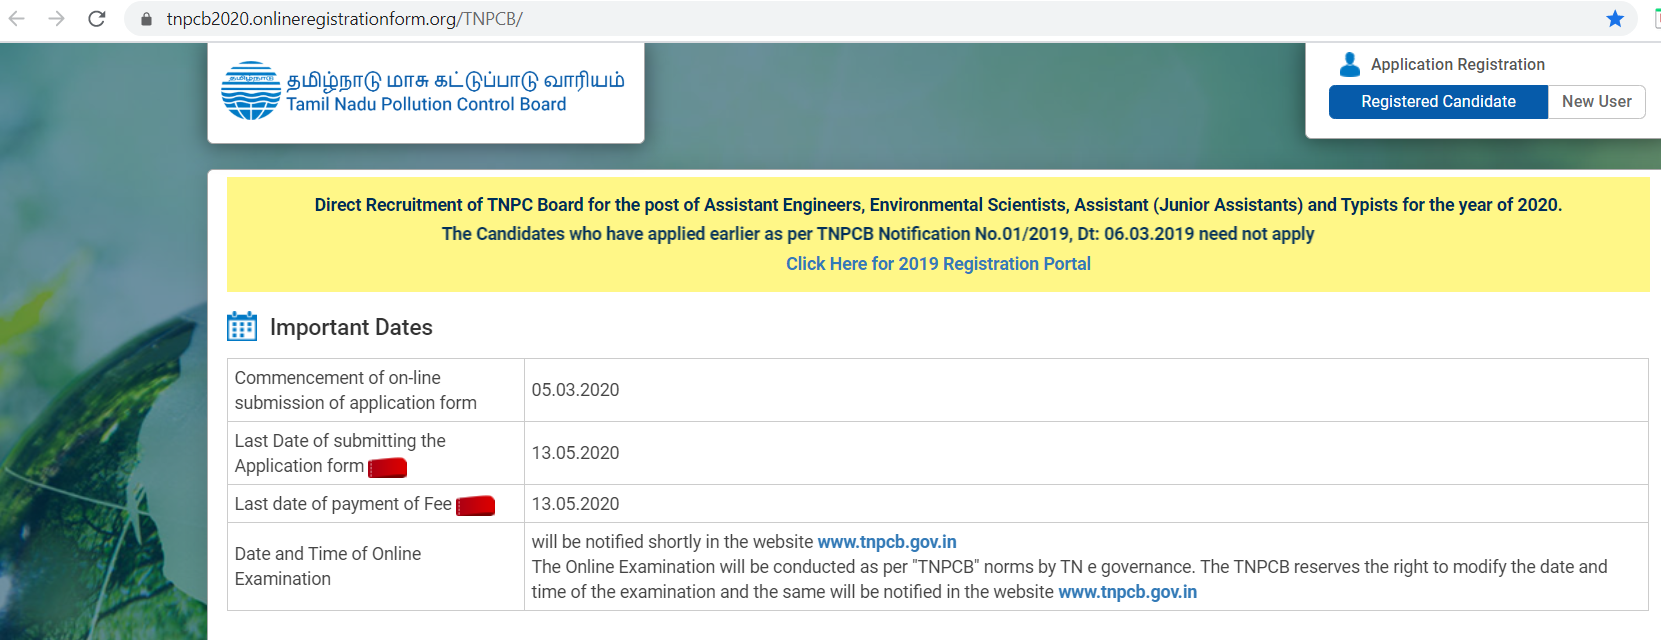 TNPCB Date Extension